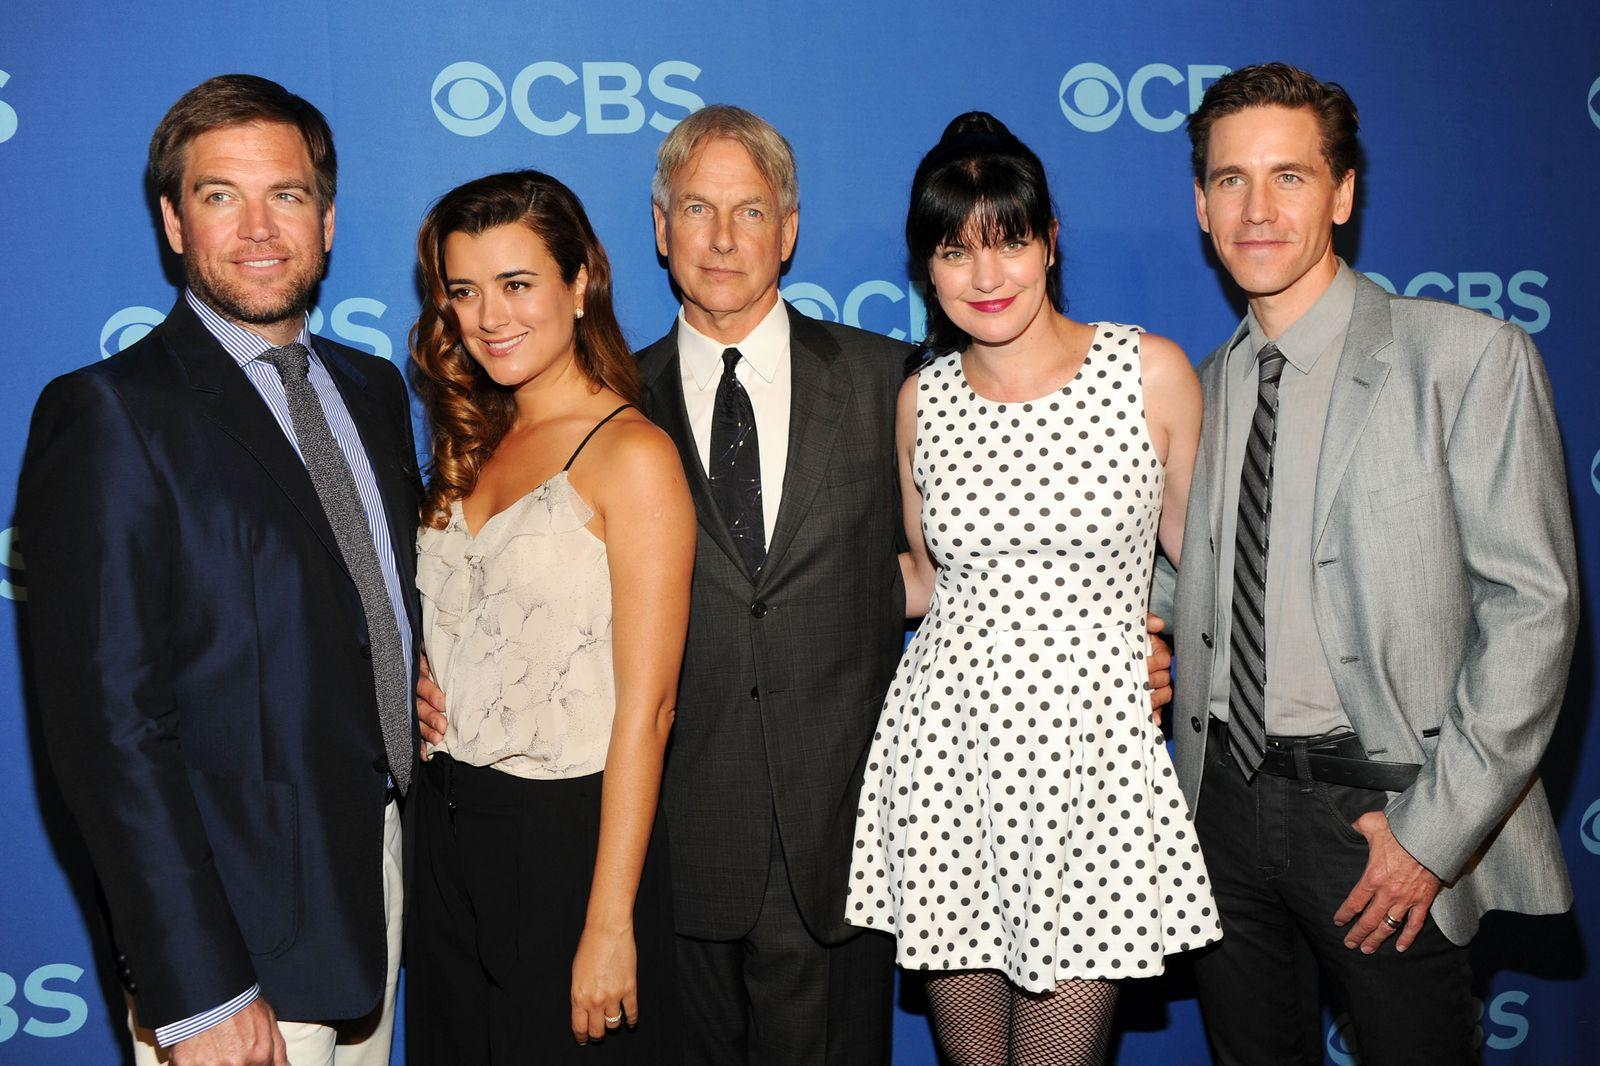 NCIS: The Humor Behind The Hit Show